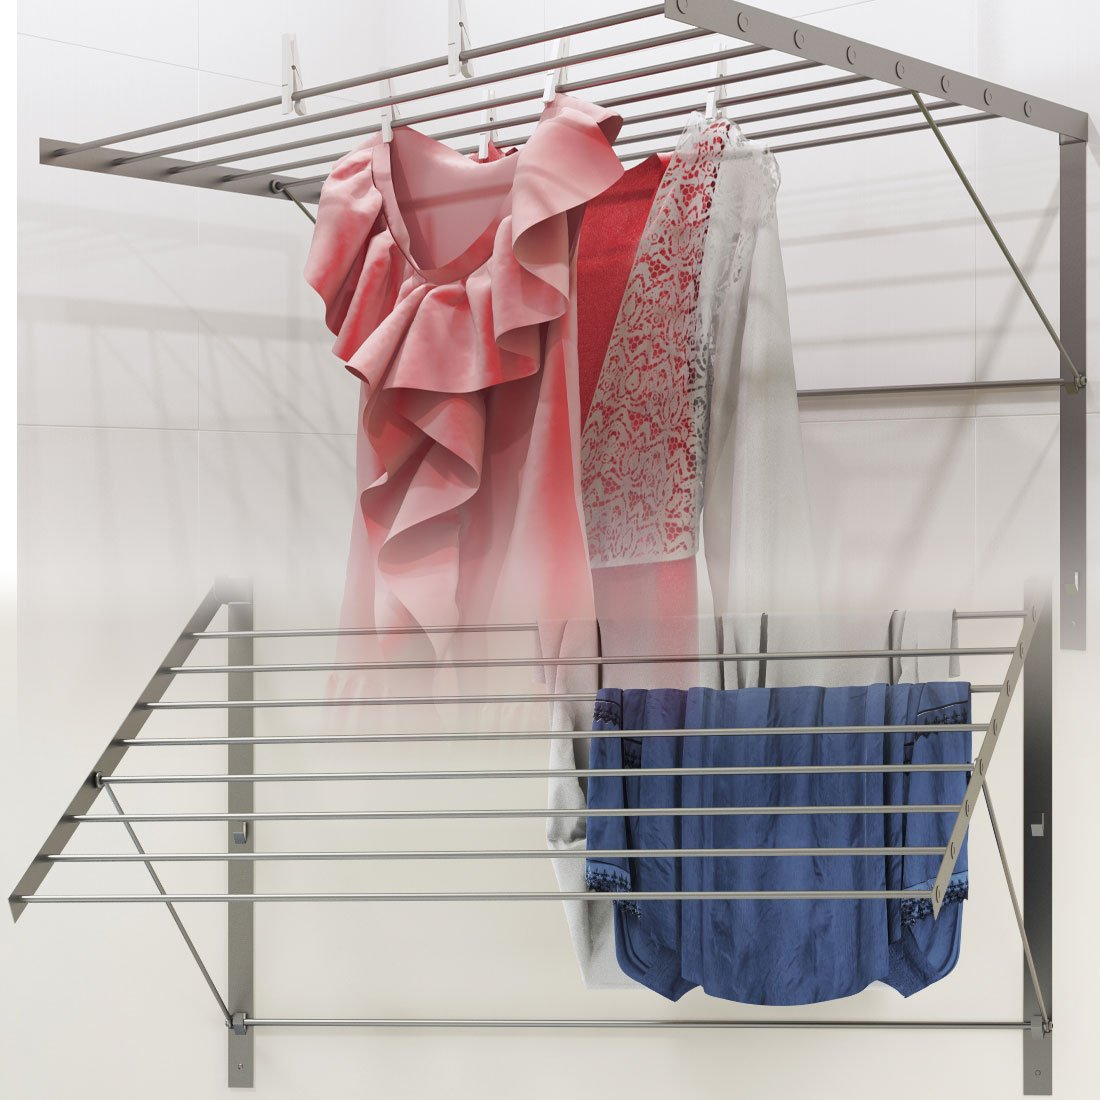 canada view clothes ca smart drying racks clotheslines s lowe compact larger dryer cloth telescopic rack